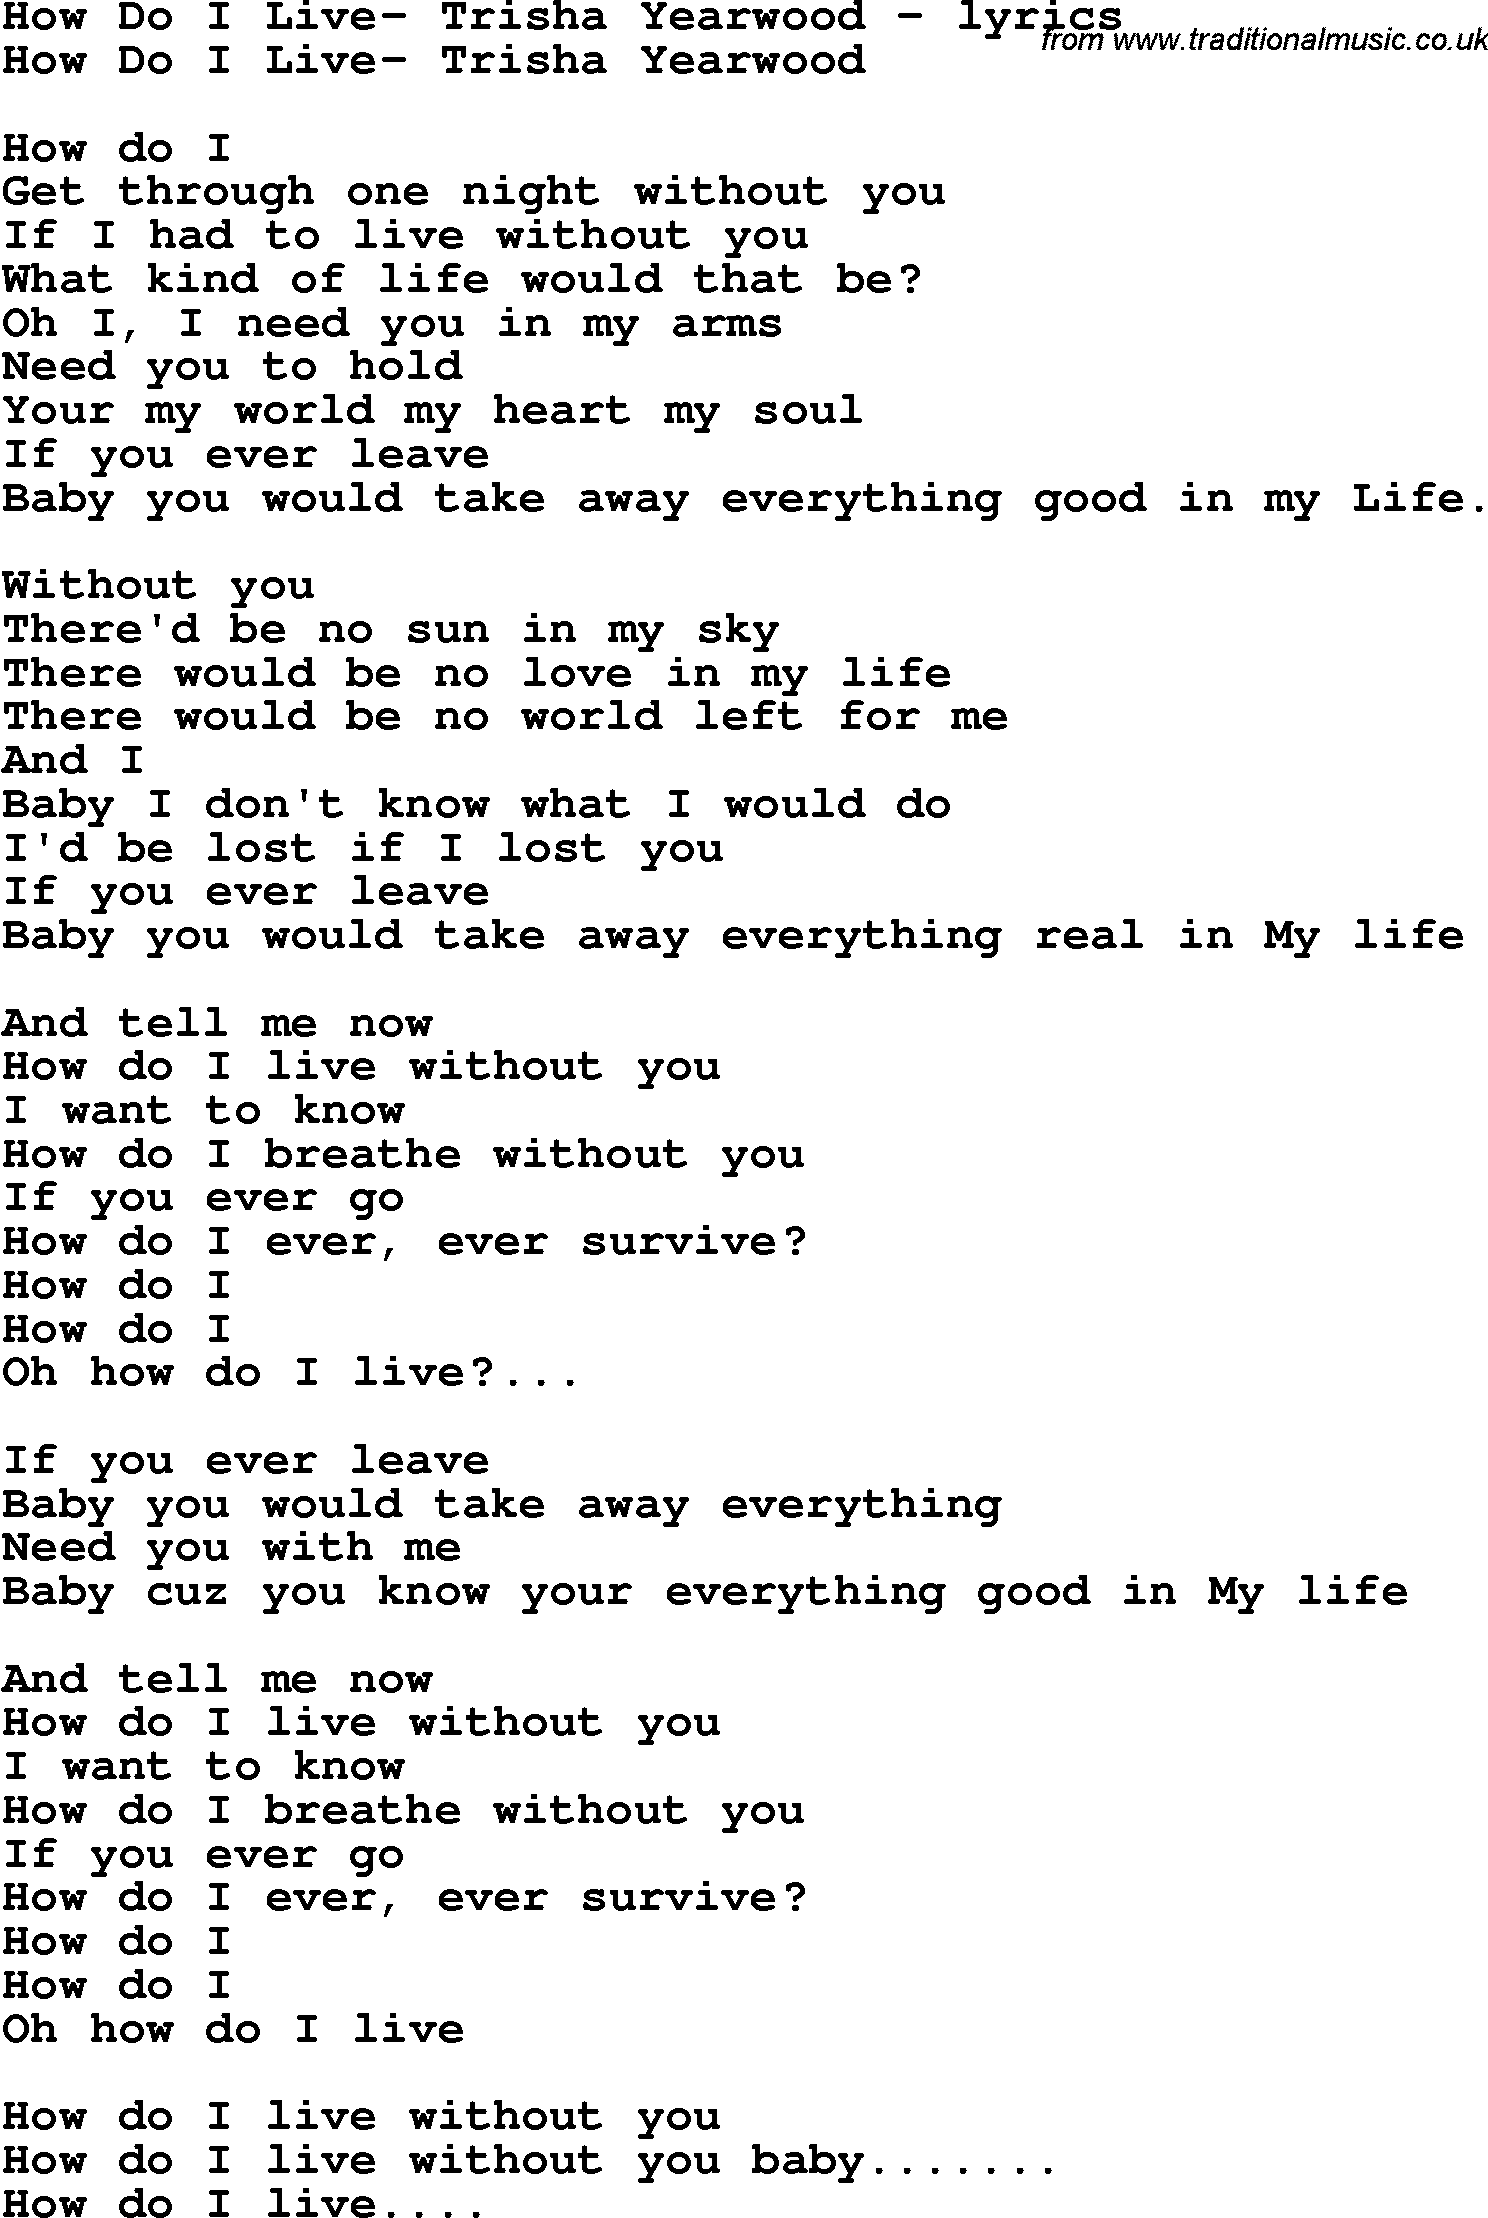 Without you what do i do with me lyrics